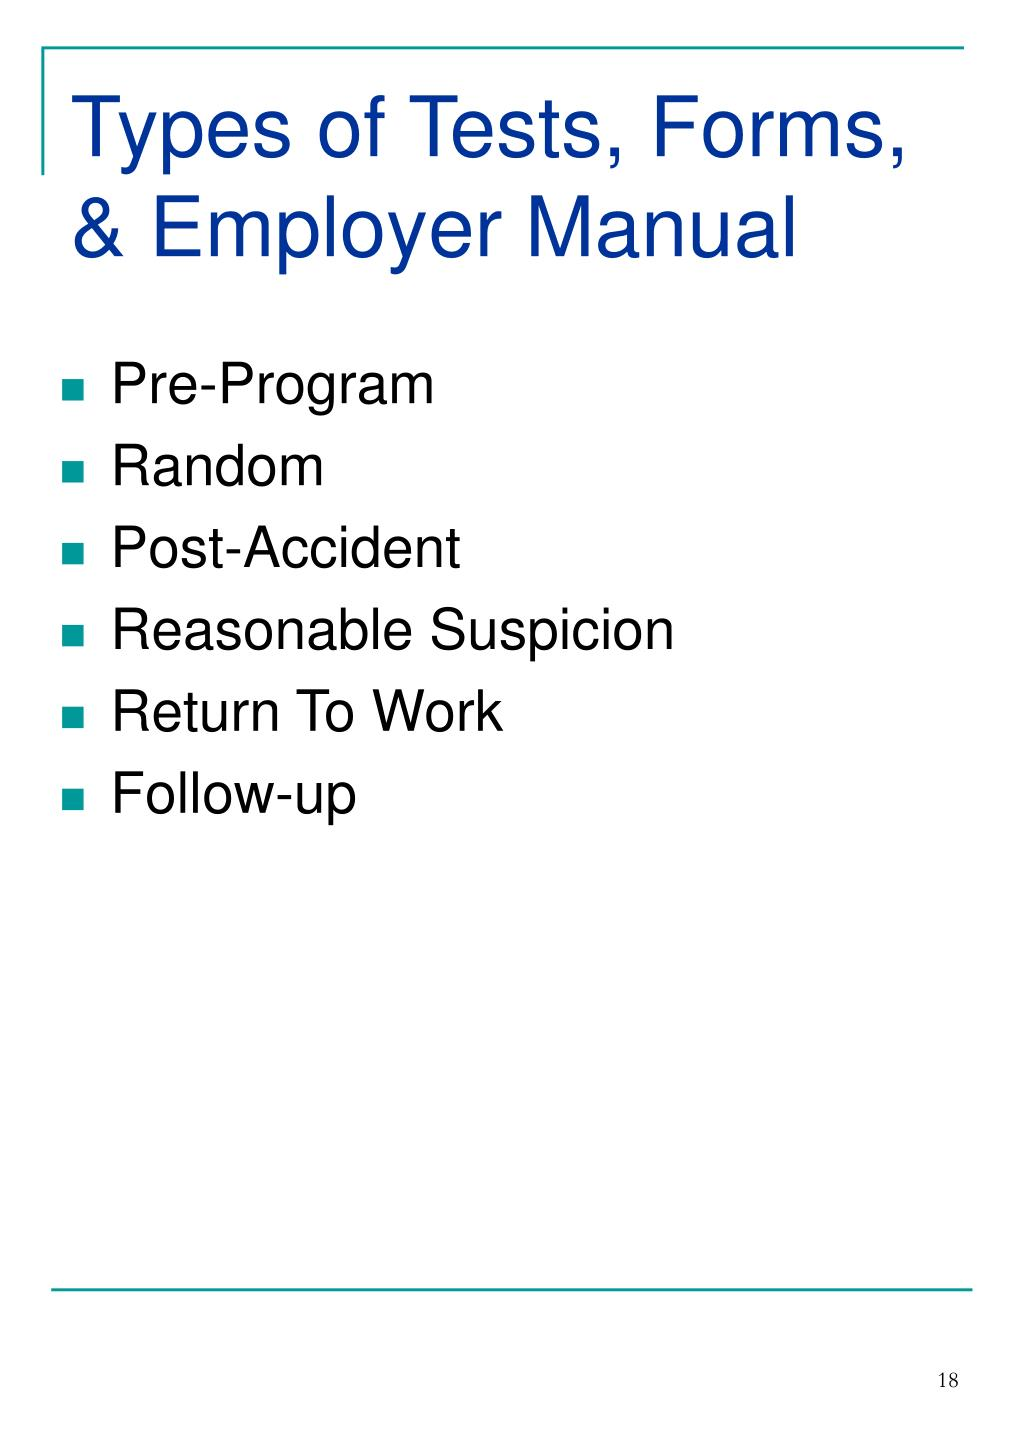 Types of Tests, Forms, & Employer Manual